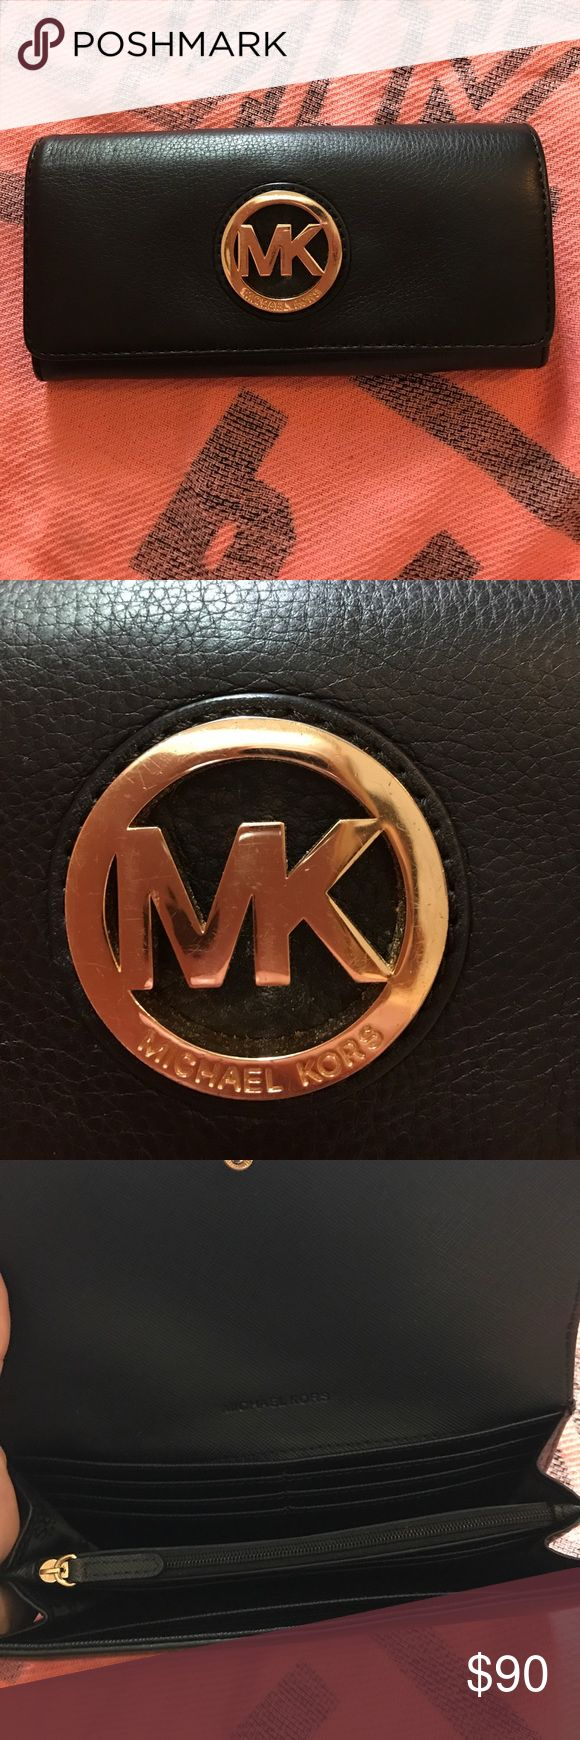 Super Cute Michael Kors Wallet Excellent Condition This Black Soft Leather Michael Kors Wallet Is In Amazing Condition Just A Few Small Scratches On Michael Kors Front Plate As Pictured Hardly Noticeable. Tons Of Compartments Holds Everything You Might Need Michael Kors Bags Wallets